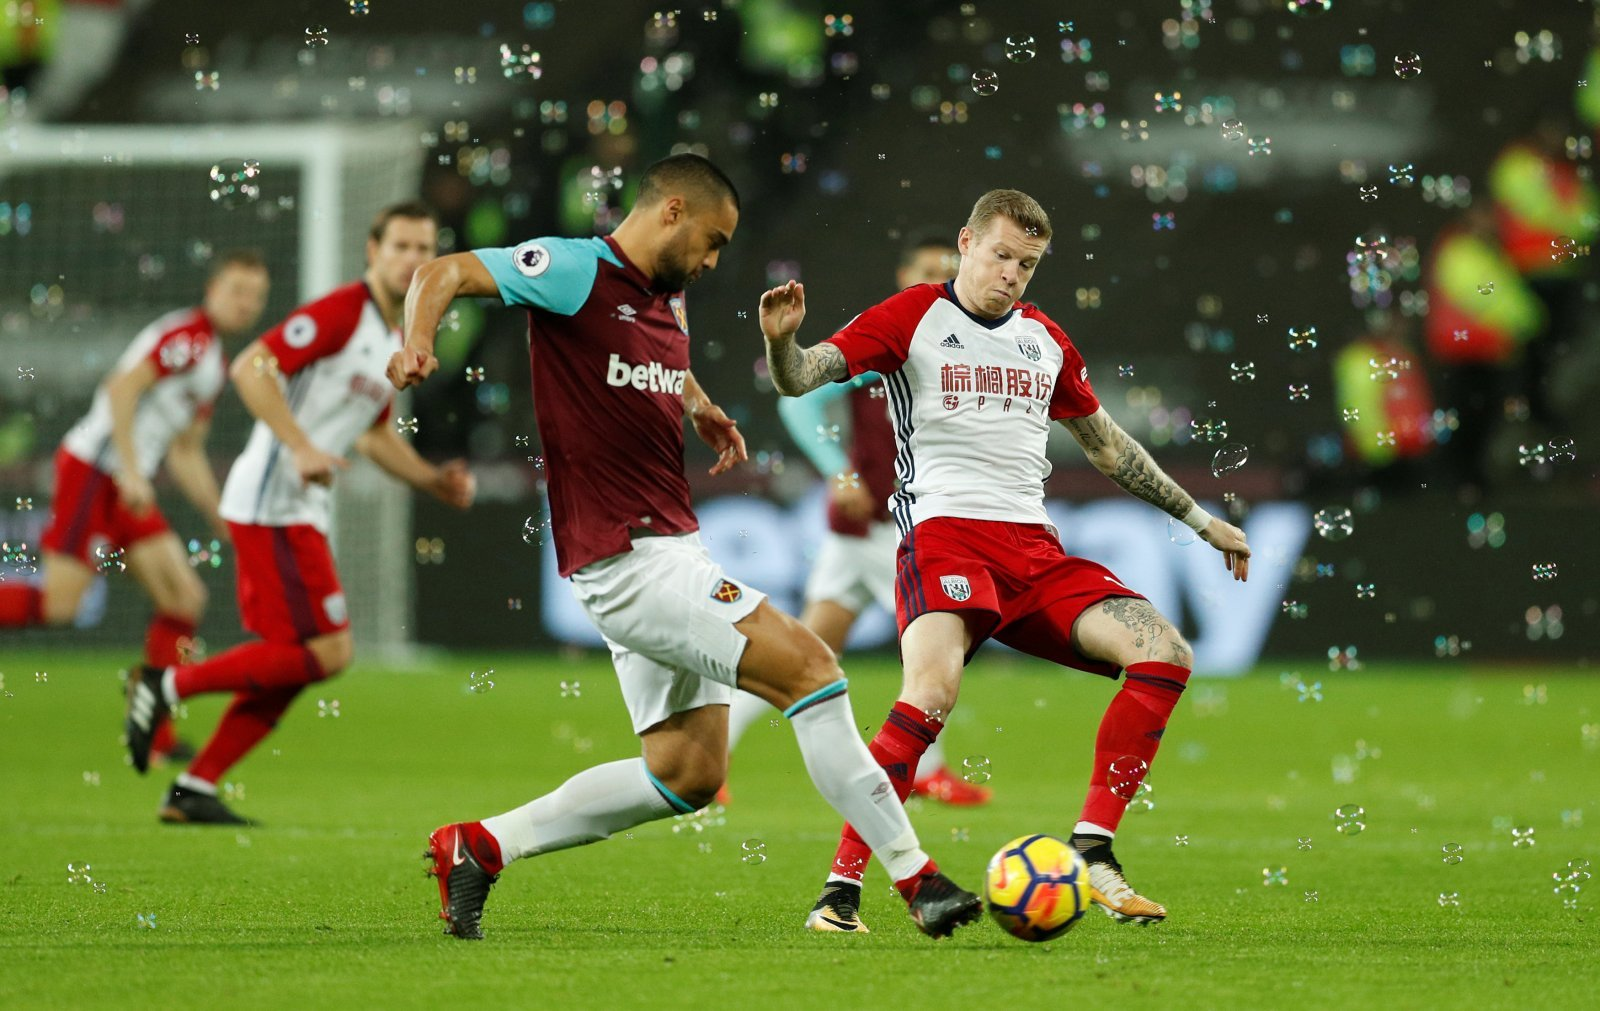 West Ham United: Many fans were over the moon to see Winston Reid's return to action